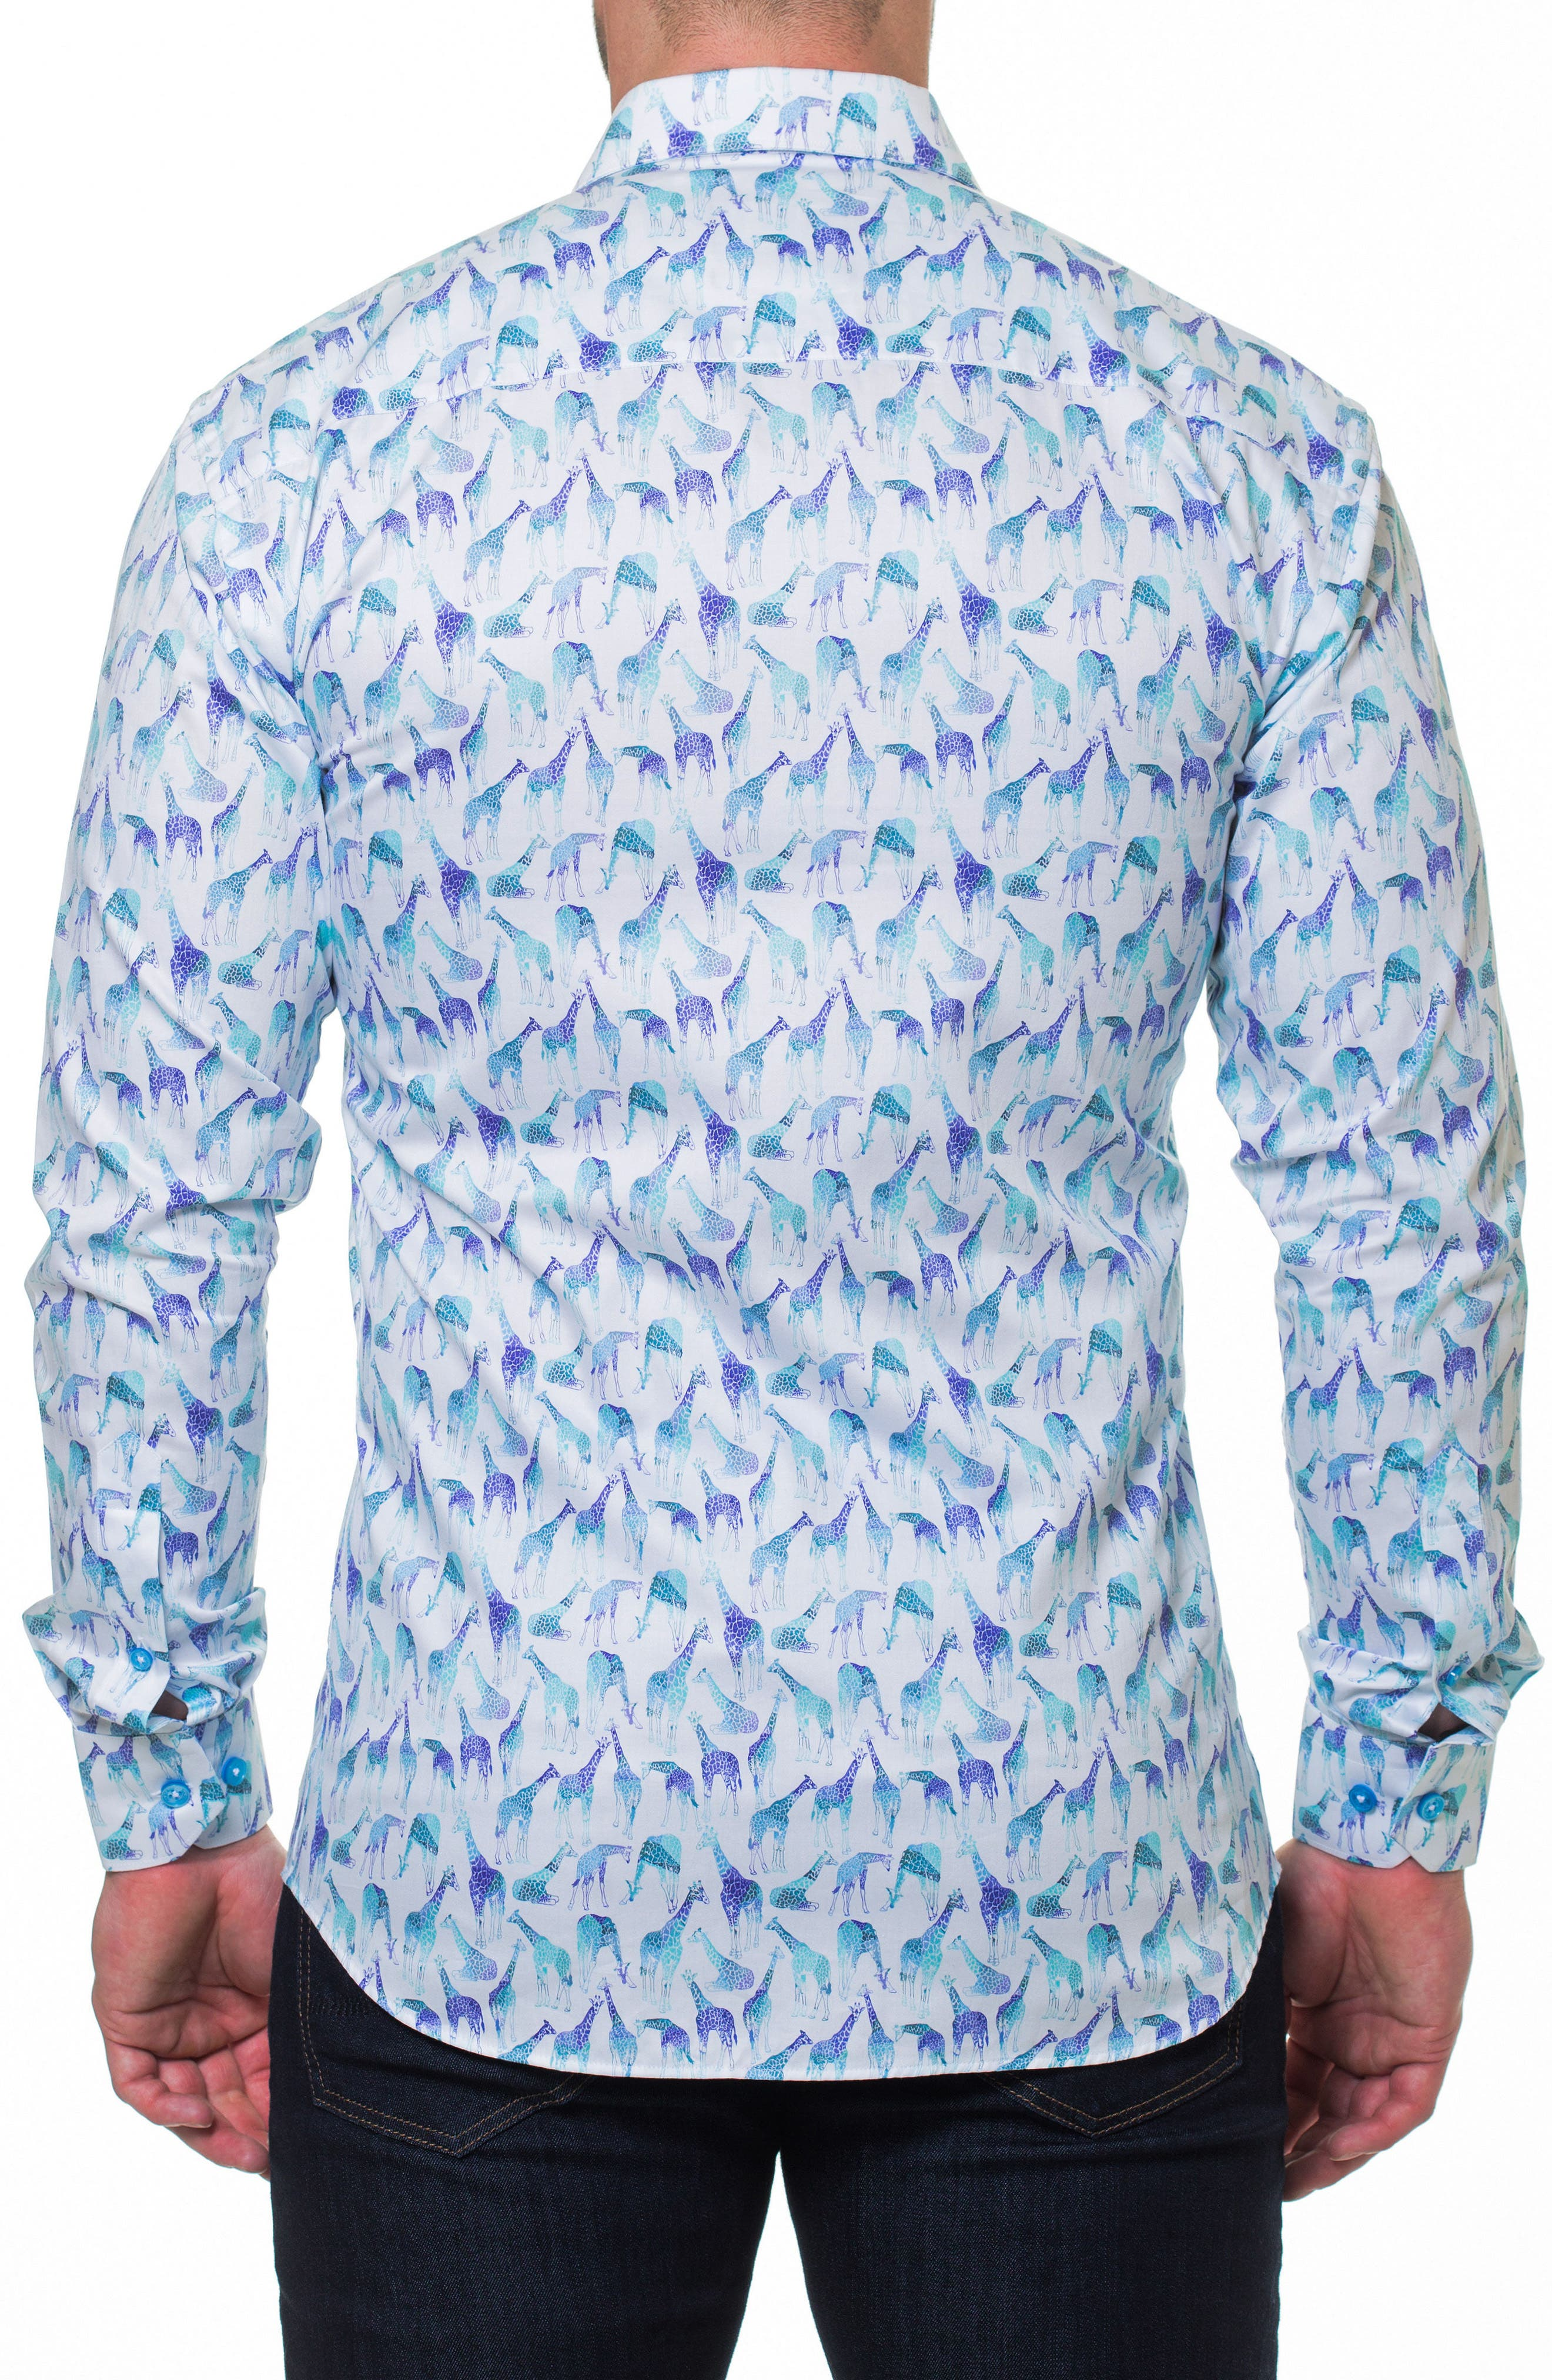 Luxor Giraffe Sport Shirt,                             Alternate thumbnail 2, color,                             Blue